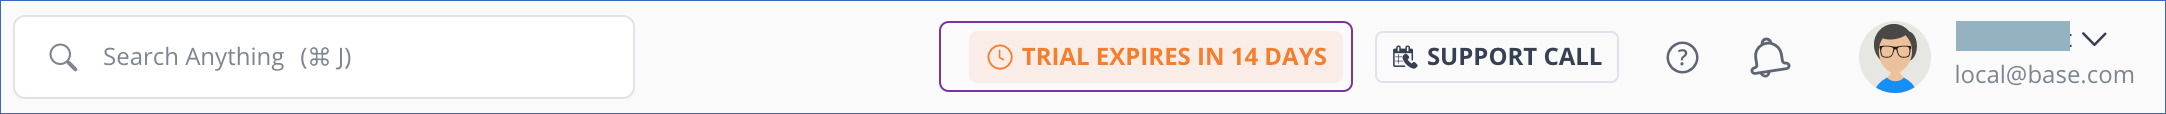 Number of days to trial expiry